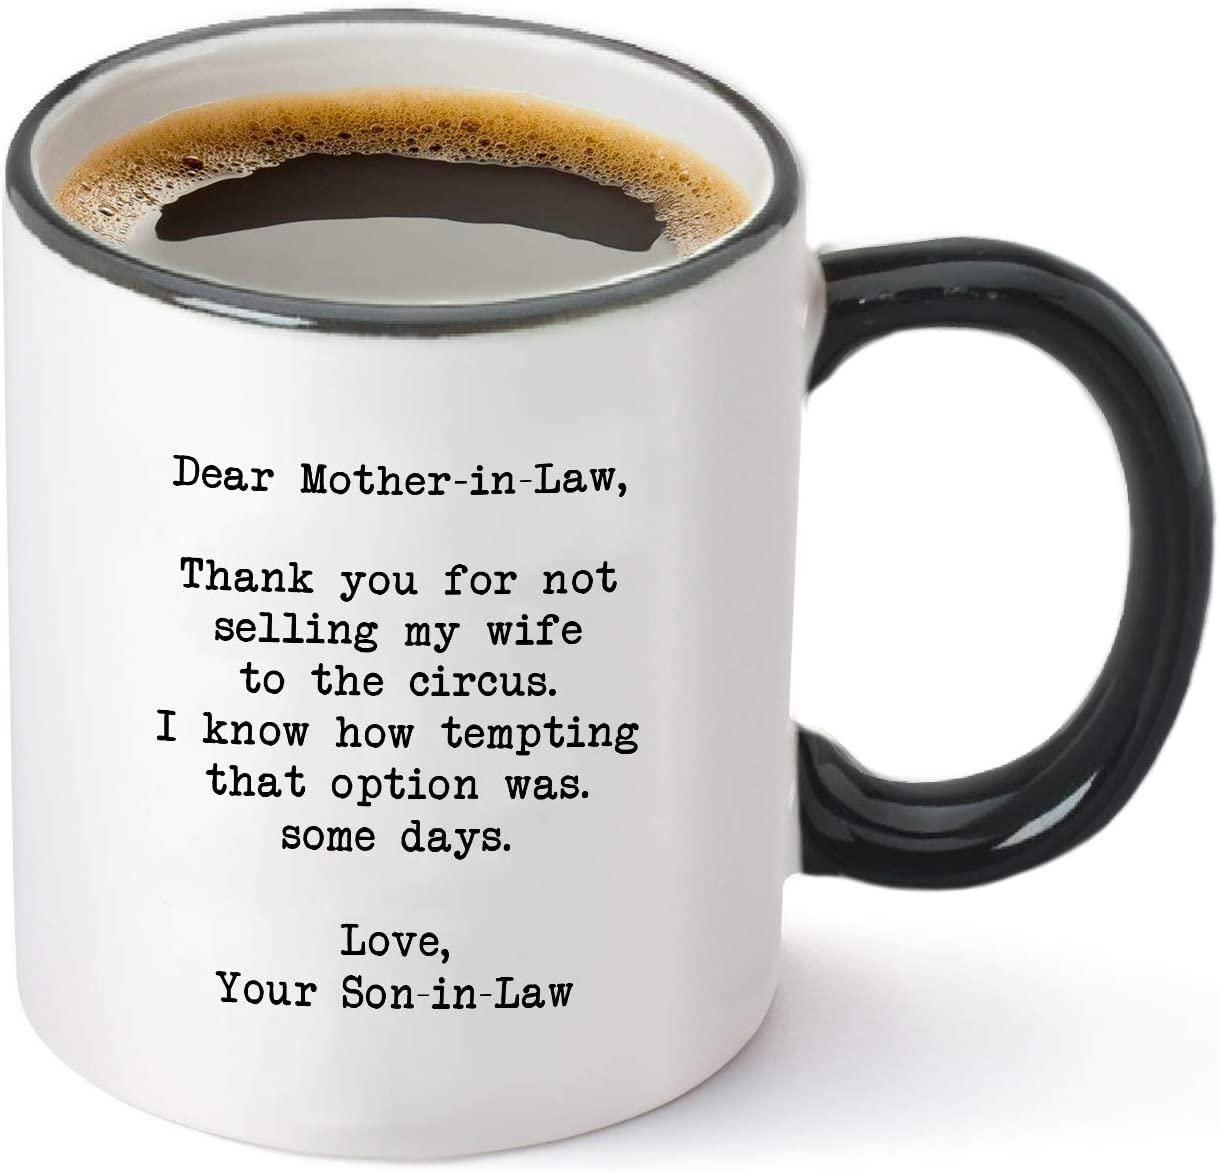 Amazon Com Dear Mother In Law Thank You For Not Selling My Wife To The Circus Funny Mother In Law Gifts From Son In Law Best Mother S Day Birthday Wedding Or Christmas Gift